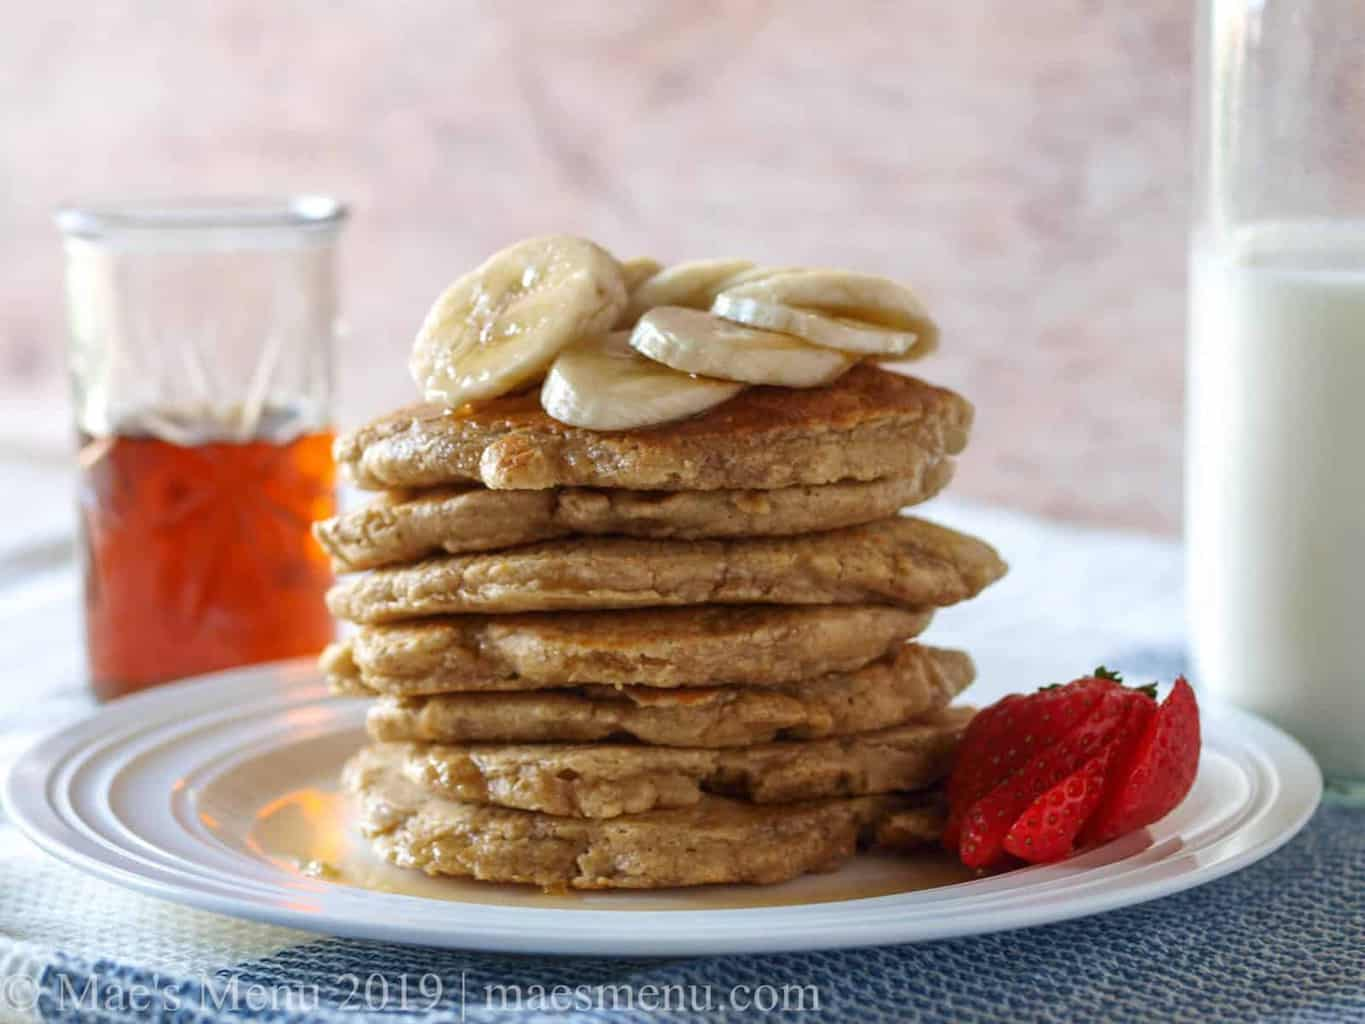 A stack of gluten-free pancakes next to syrup and milk.